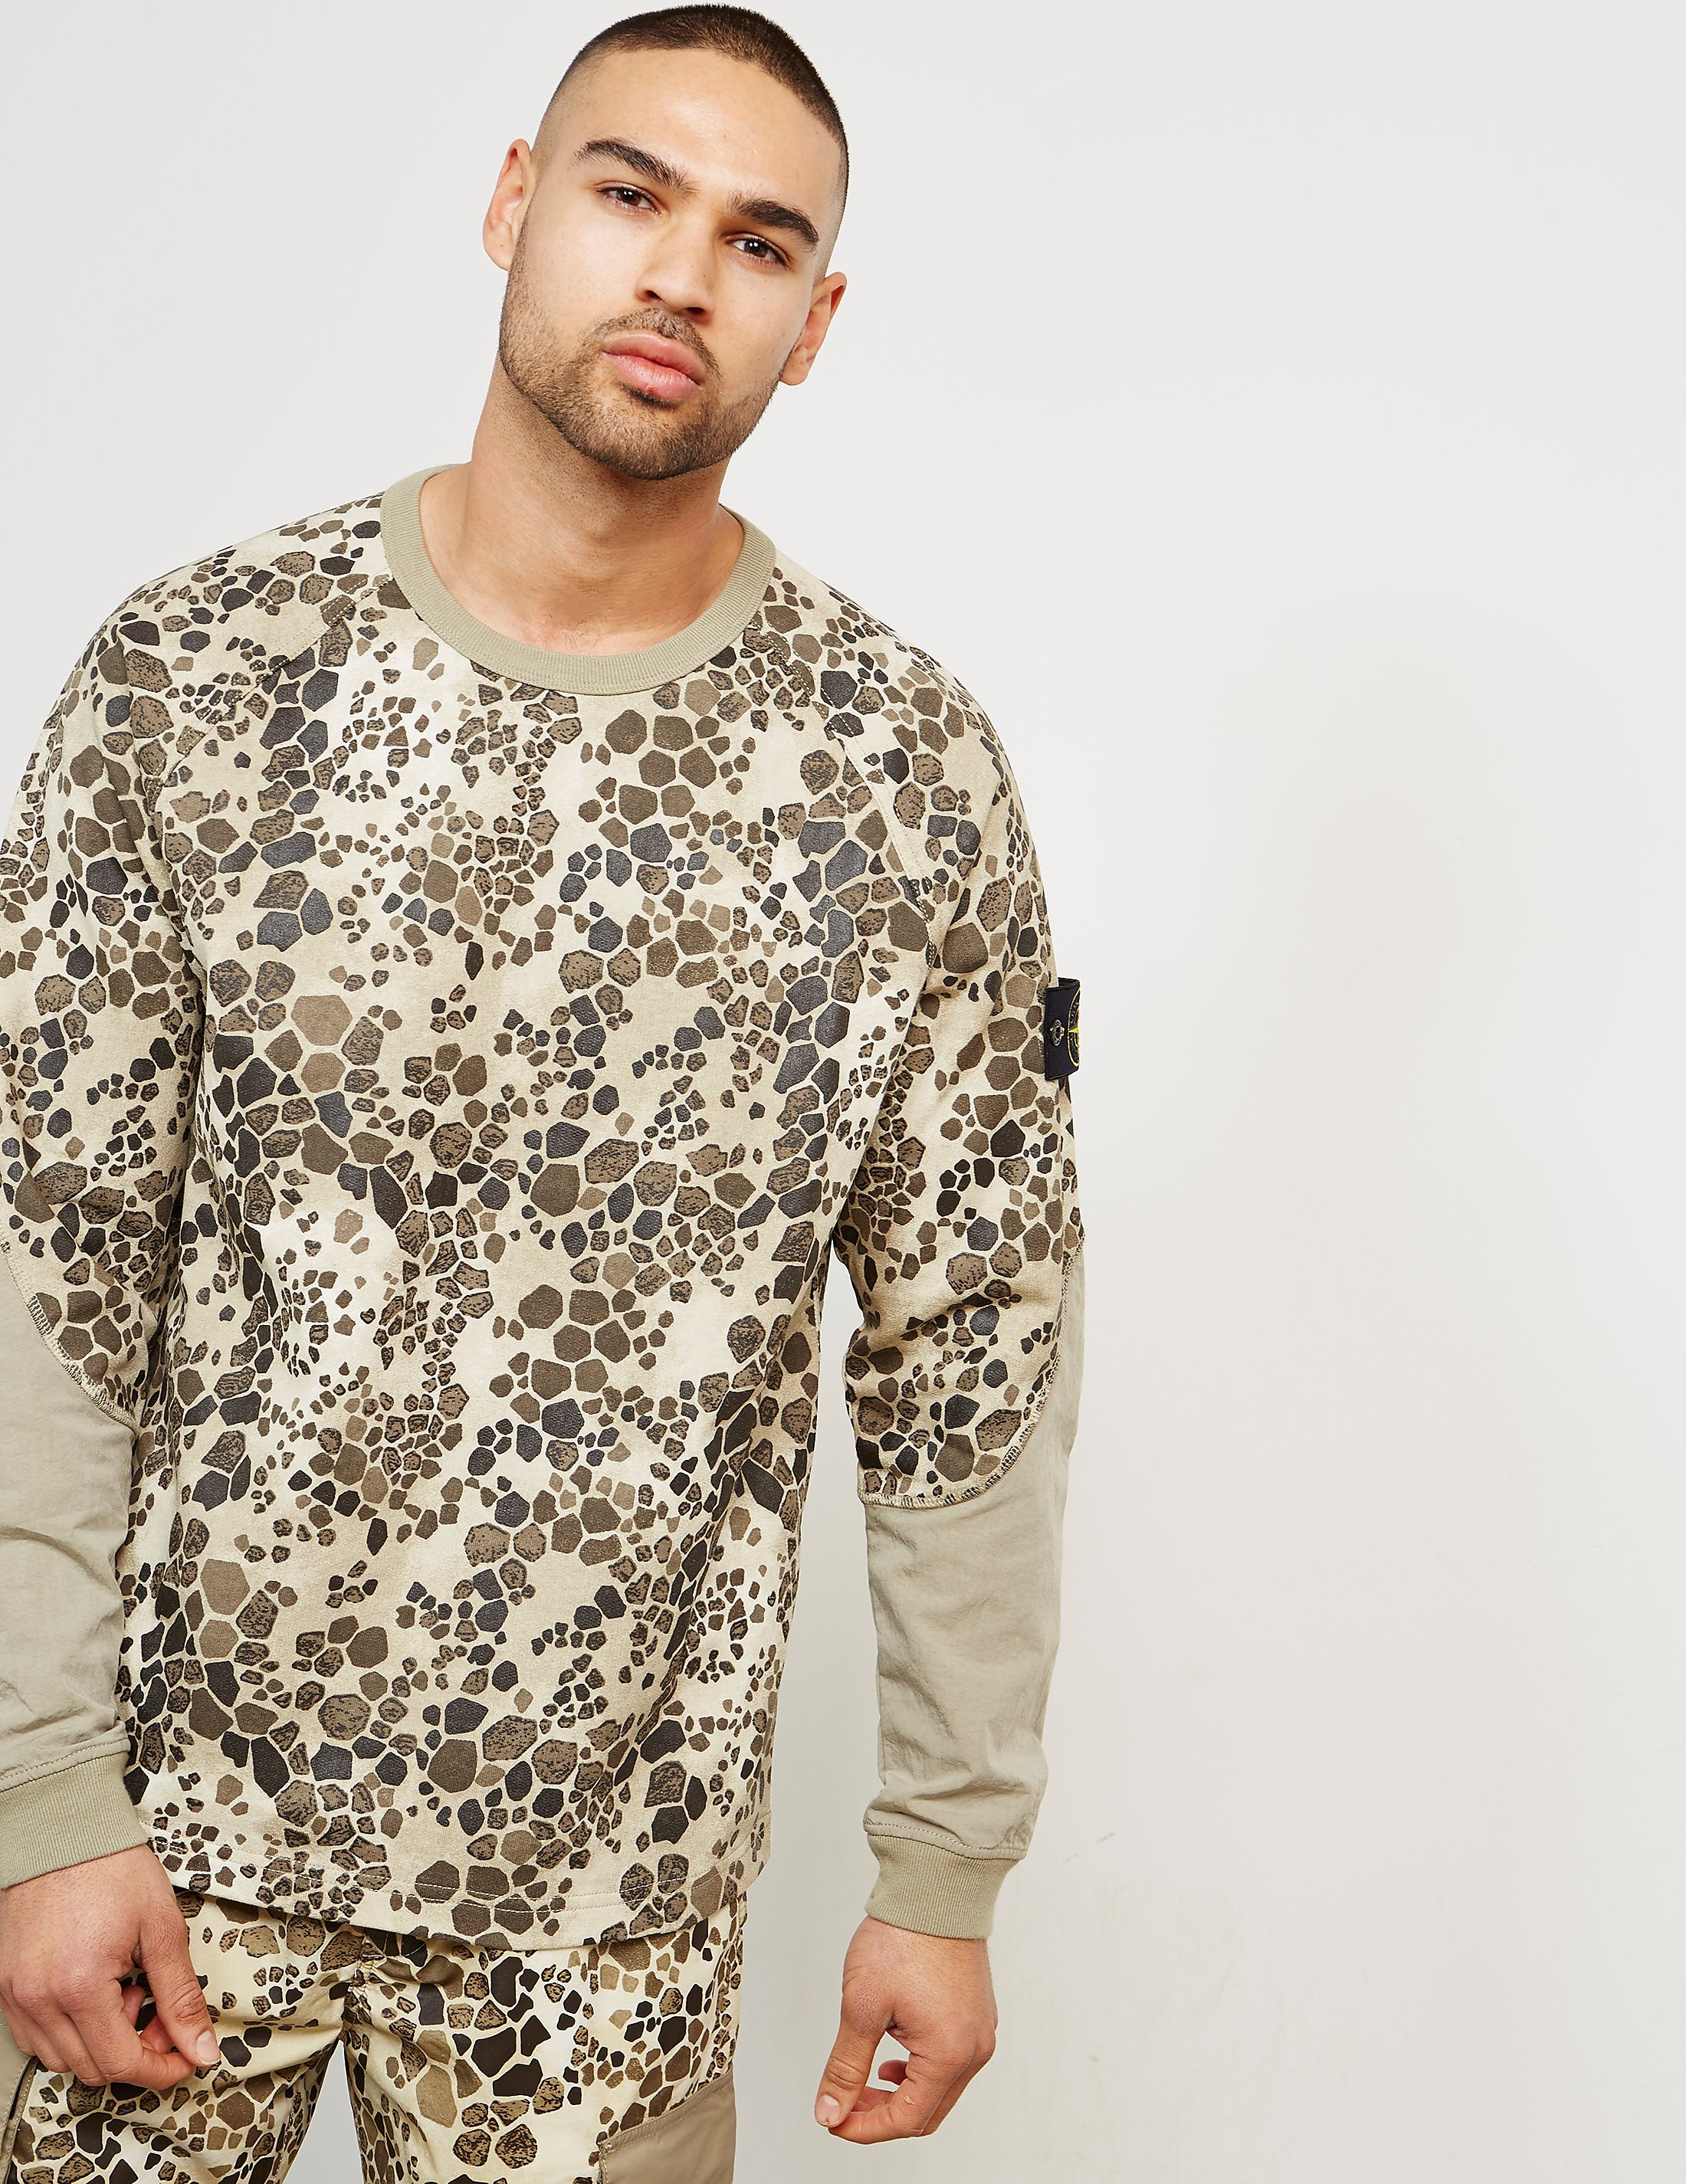 Stone Island Alligator Camo Sweatshirt